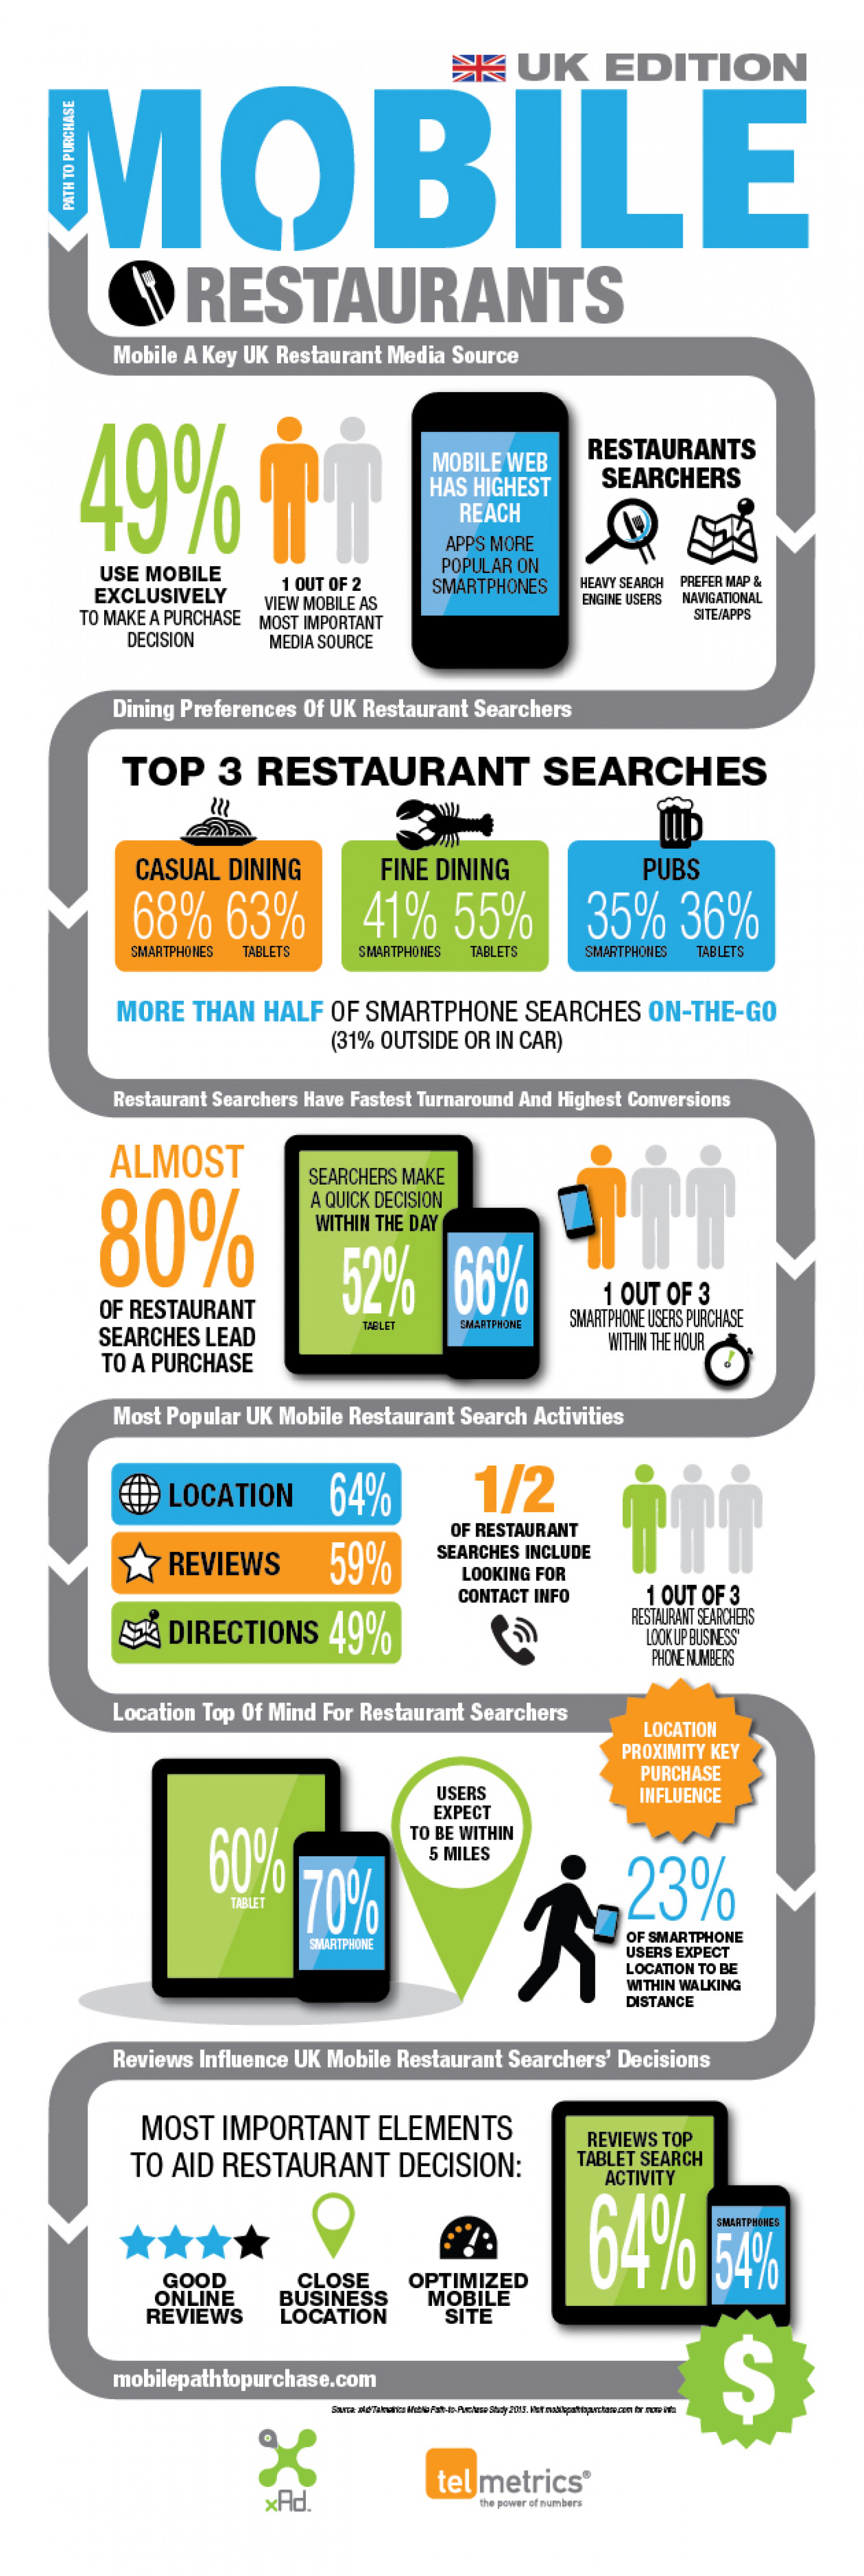 UK Restaurant Searches - Mobile Path-To-Purchase Infographic